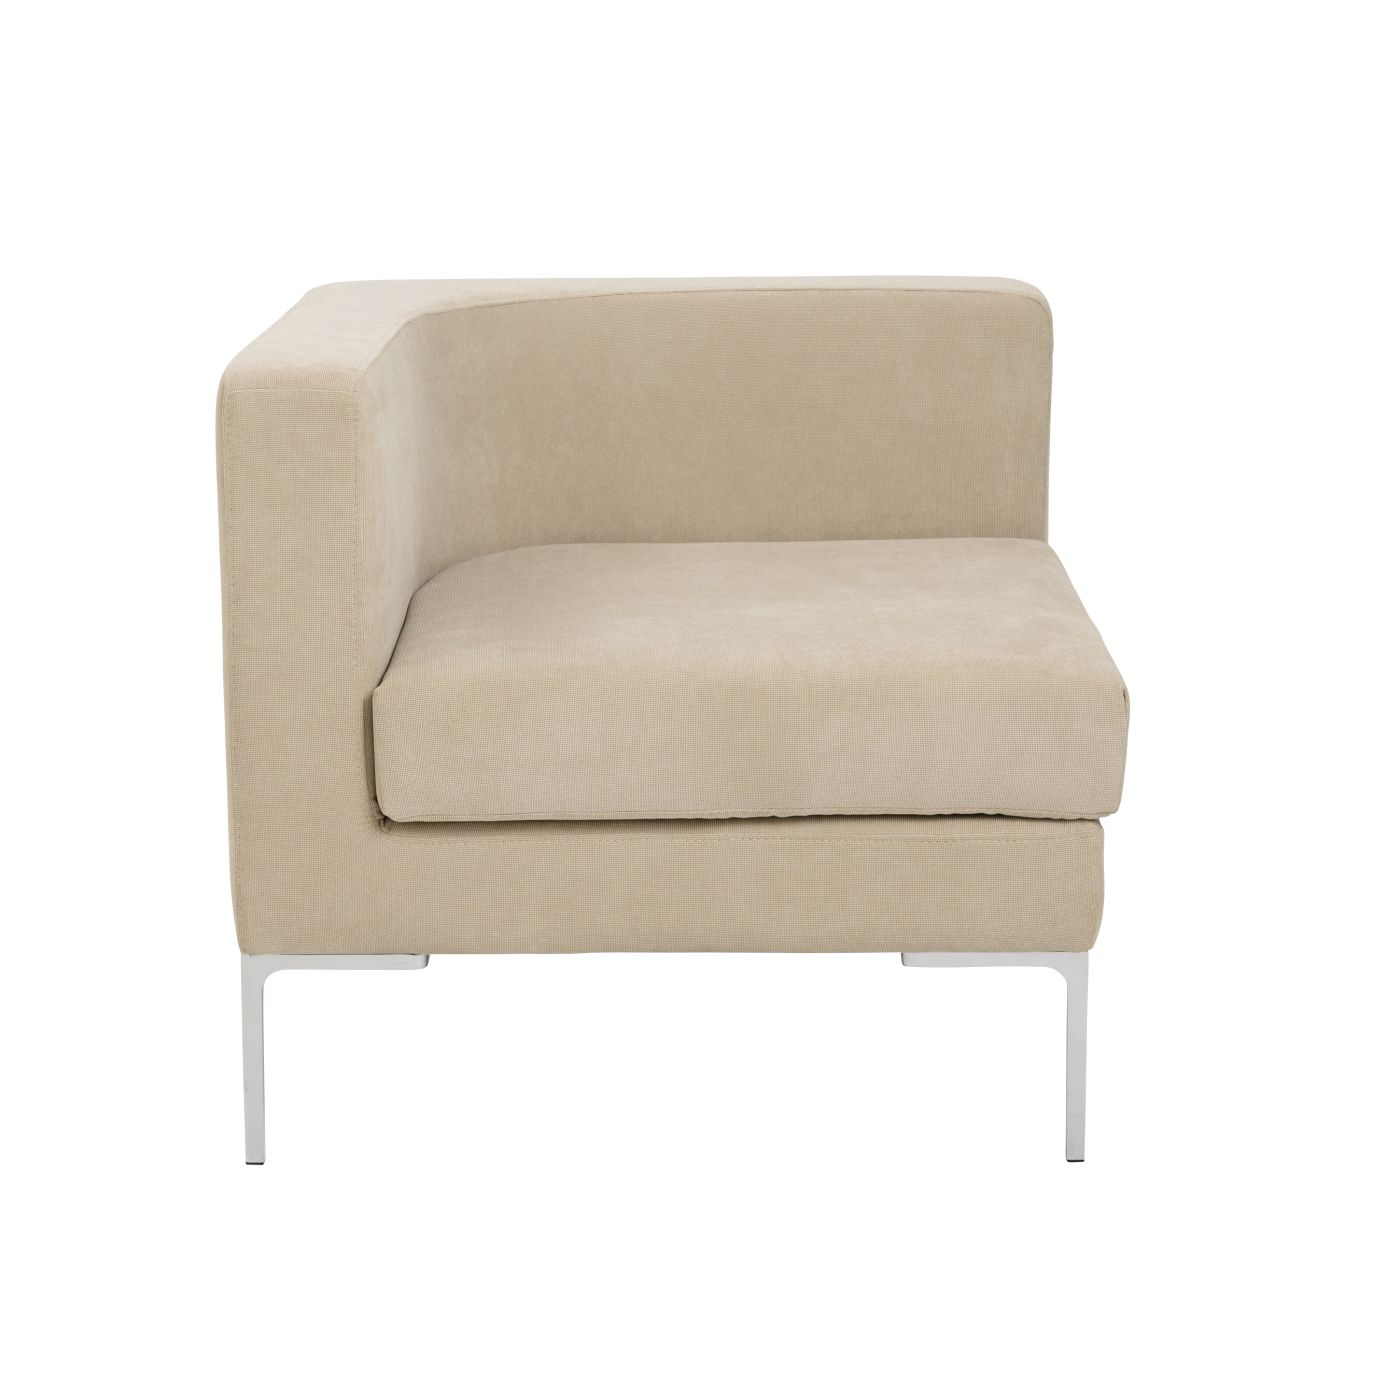 Euro style vittorio sofa with arm rests in tan euro for Sofa with only one arm